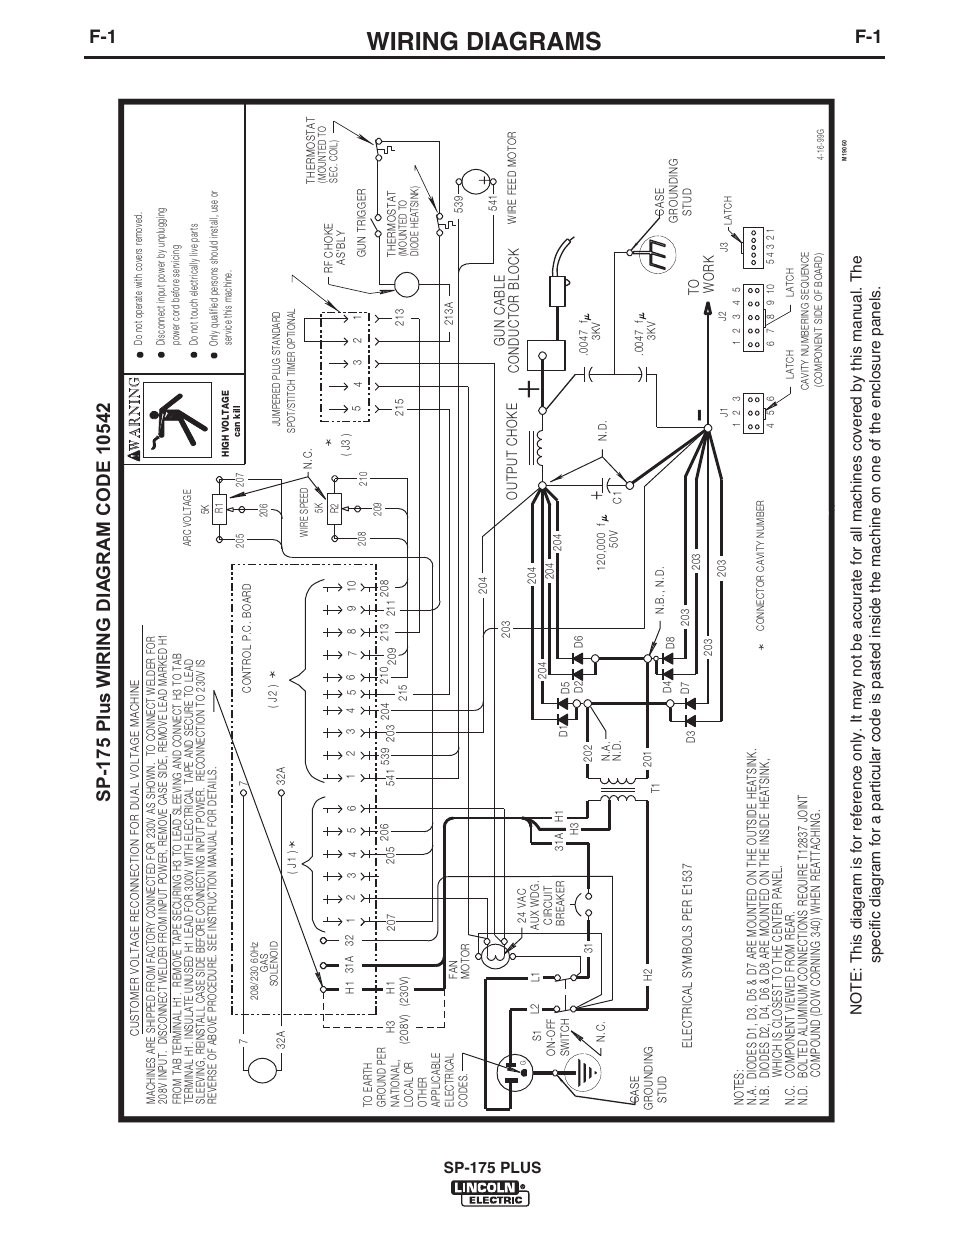 medium resolution of lincoln 203 wiring diagram wiring diagram info lincoln 203 wiring diagram